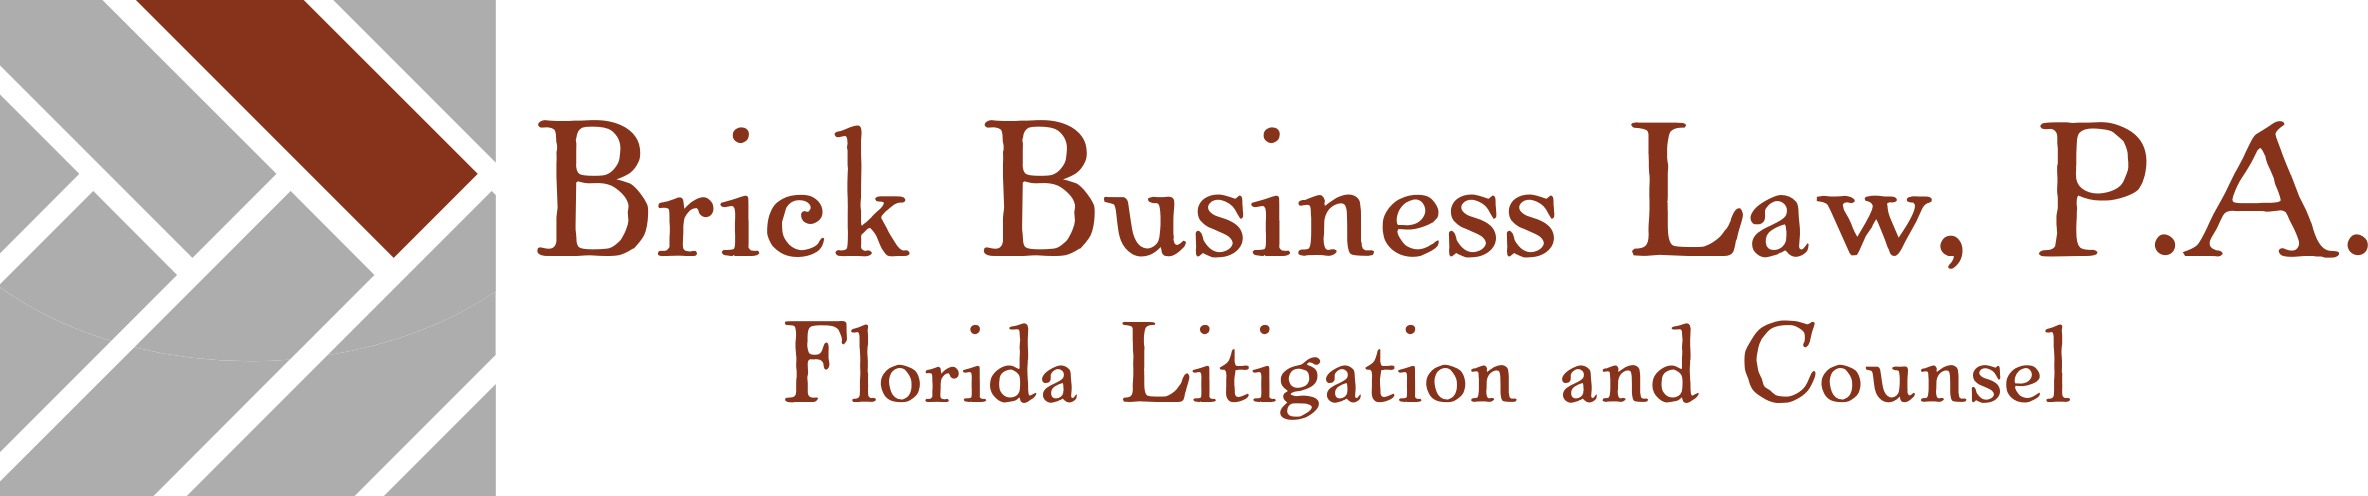 Brick Business Law, P.A.